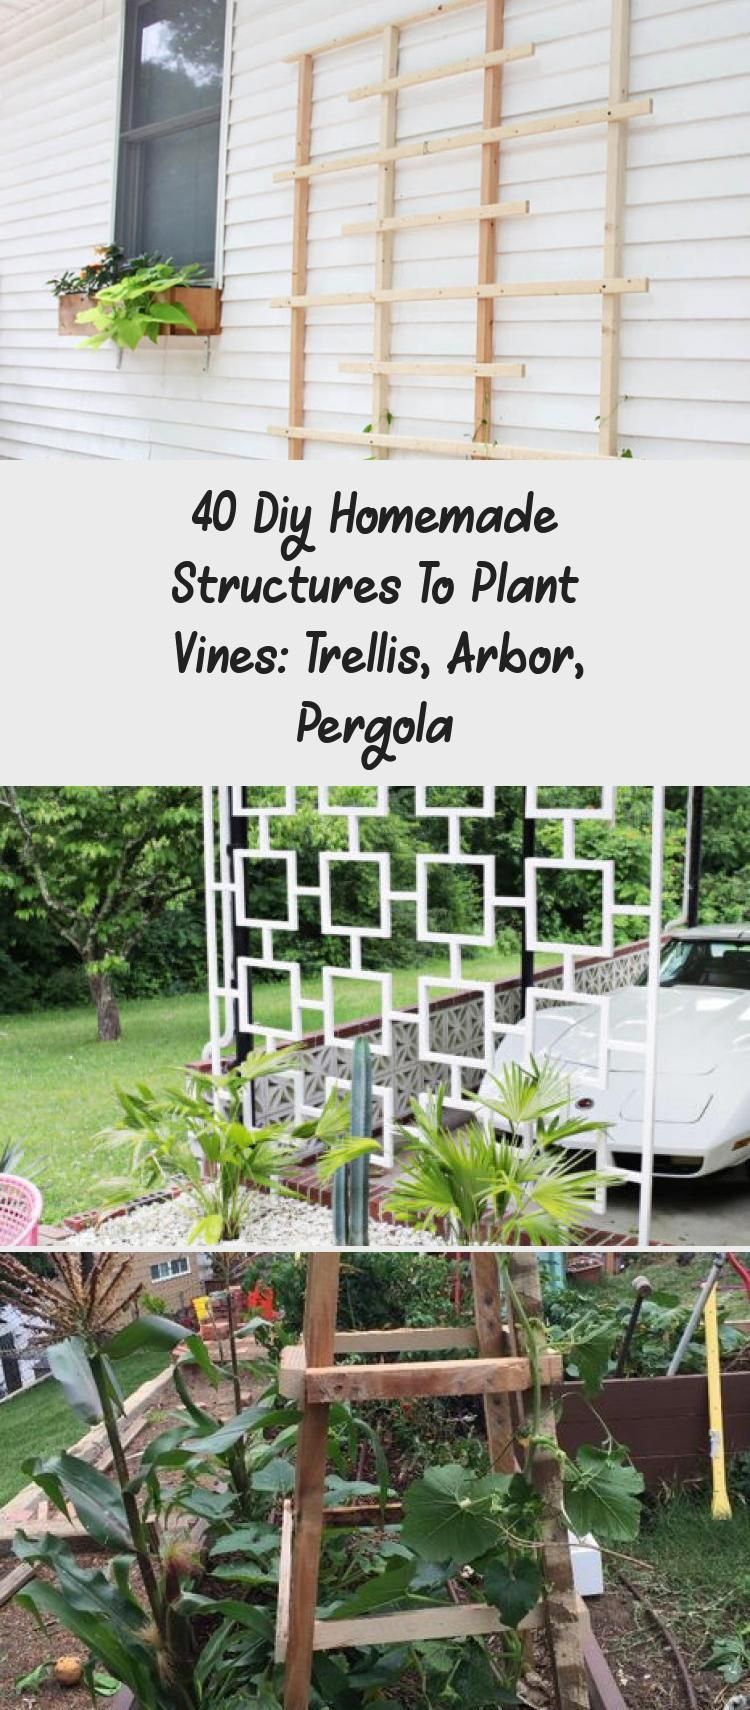 40 Diy Homemade Structures To Plant Vines Trellis Arbor Pergola  Decor Good Idea to Close the Opening Under the Deck Off for Safety And Purpose Wood Framed Wire Trellis